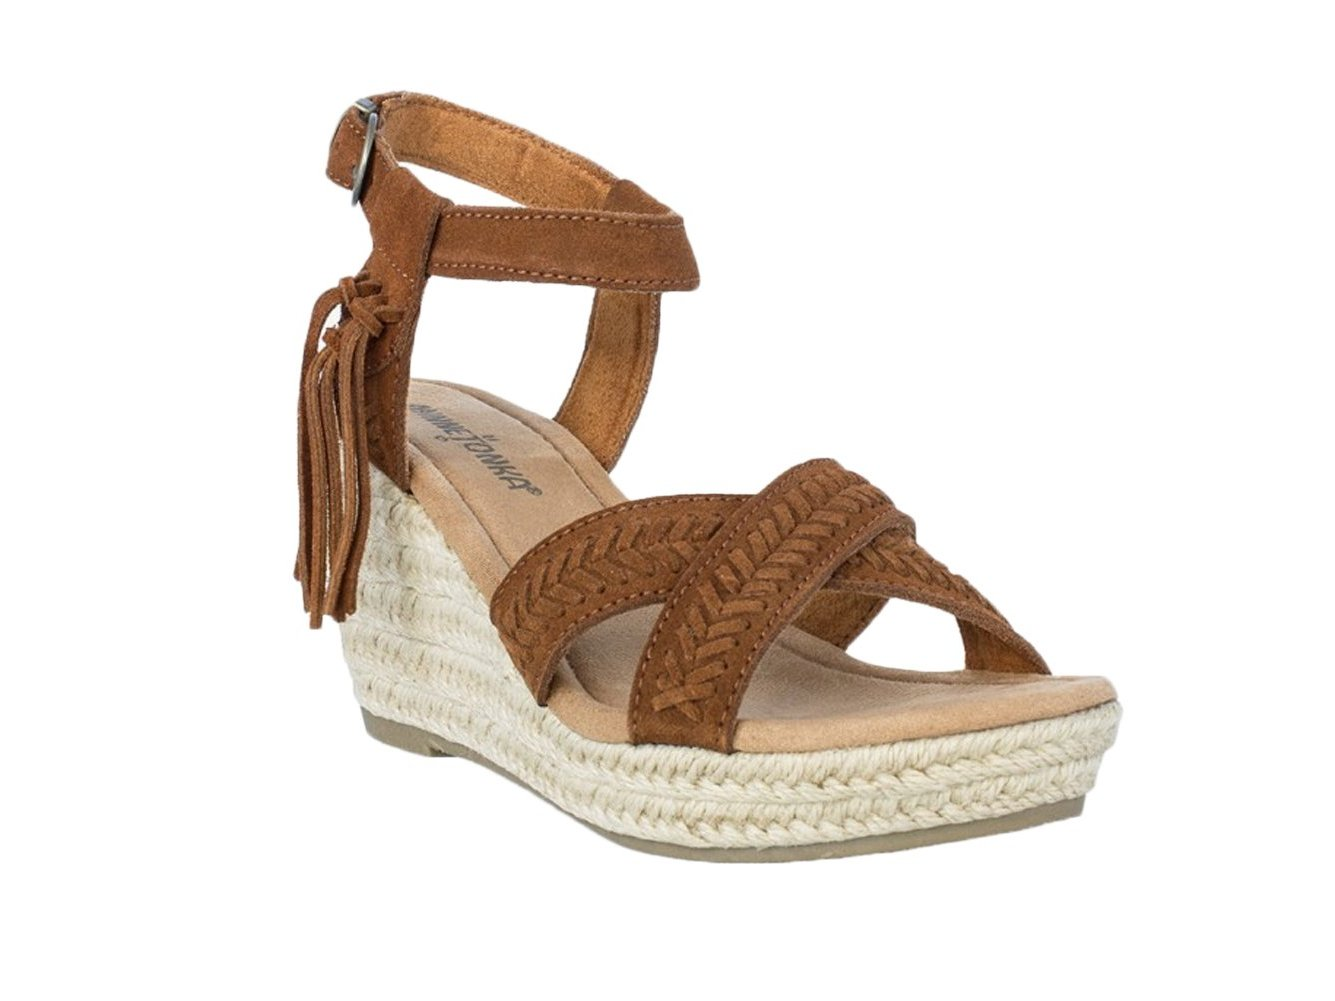 Minnetonka Naomi Women Open Toe Suede Wedge Sandal c0822372aa